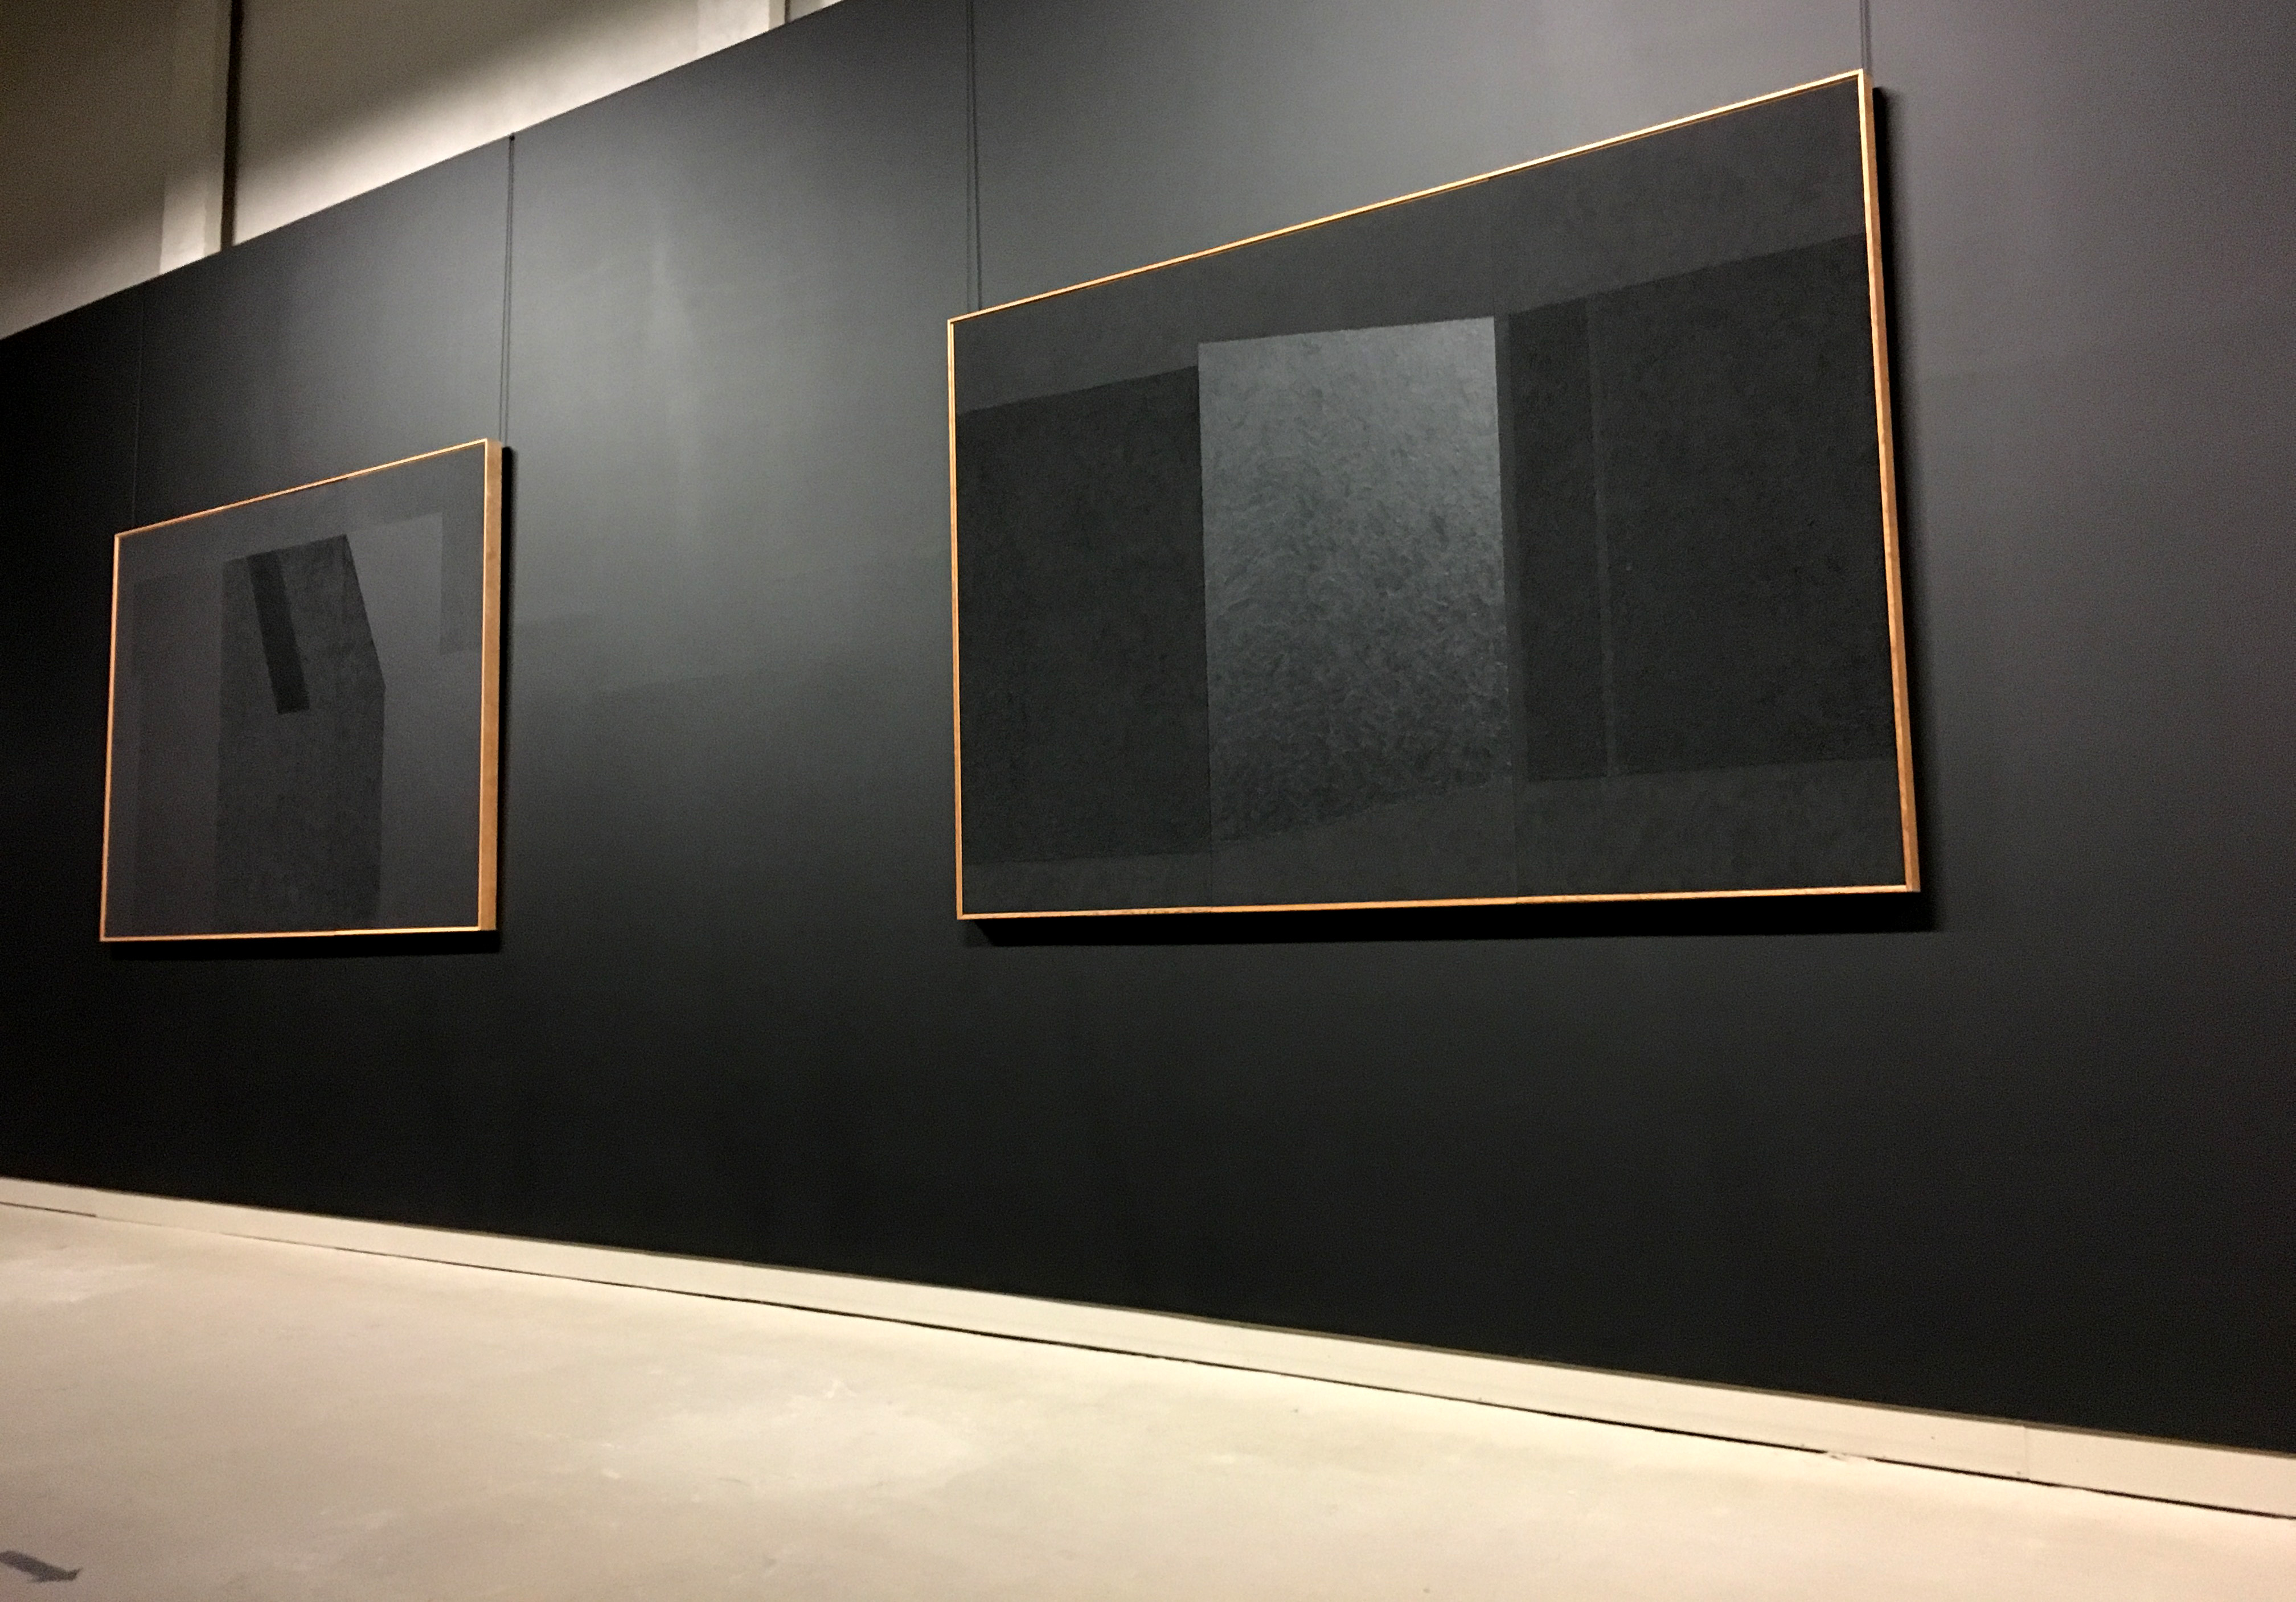 Shades of Black Burri paintings in Umbria